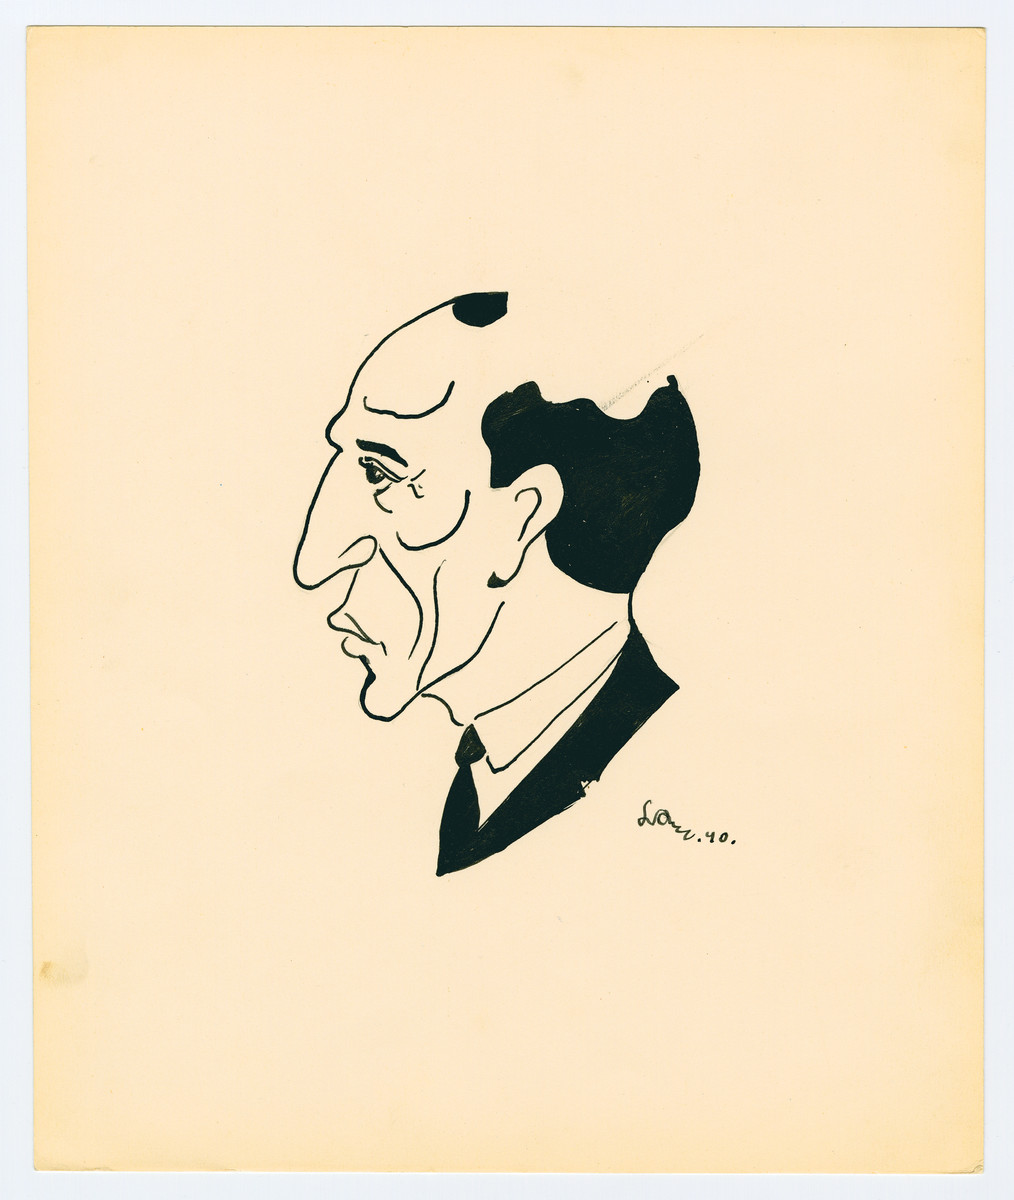 Caricature by Lutek Orenbach of his father.